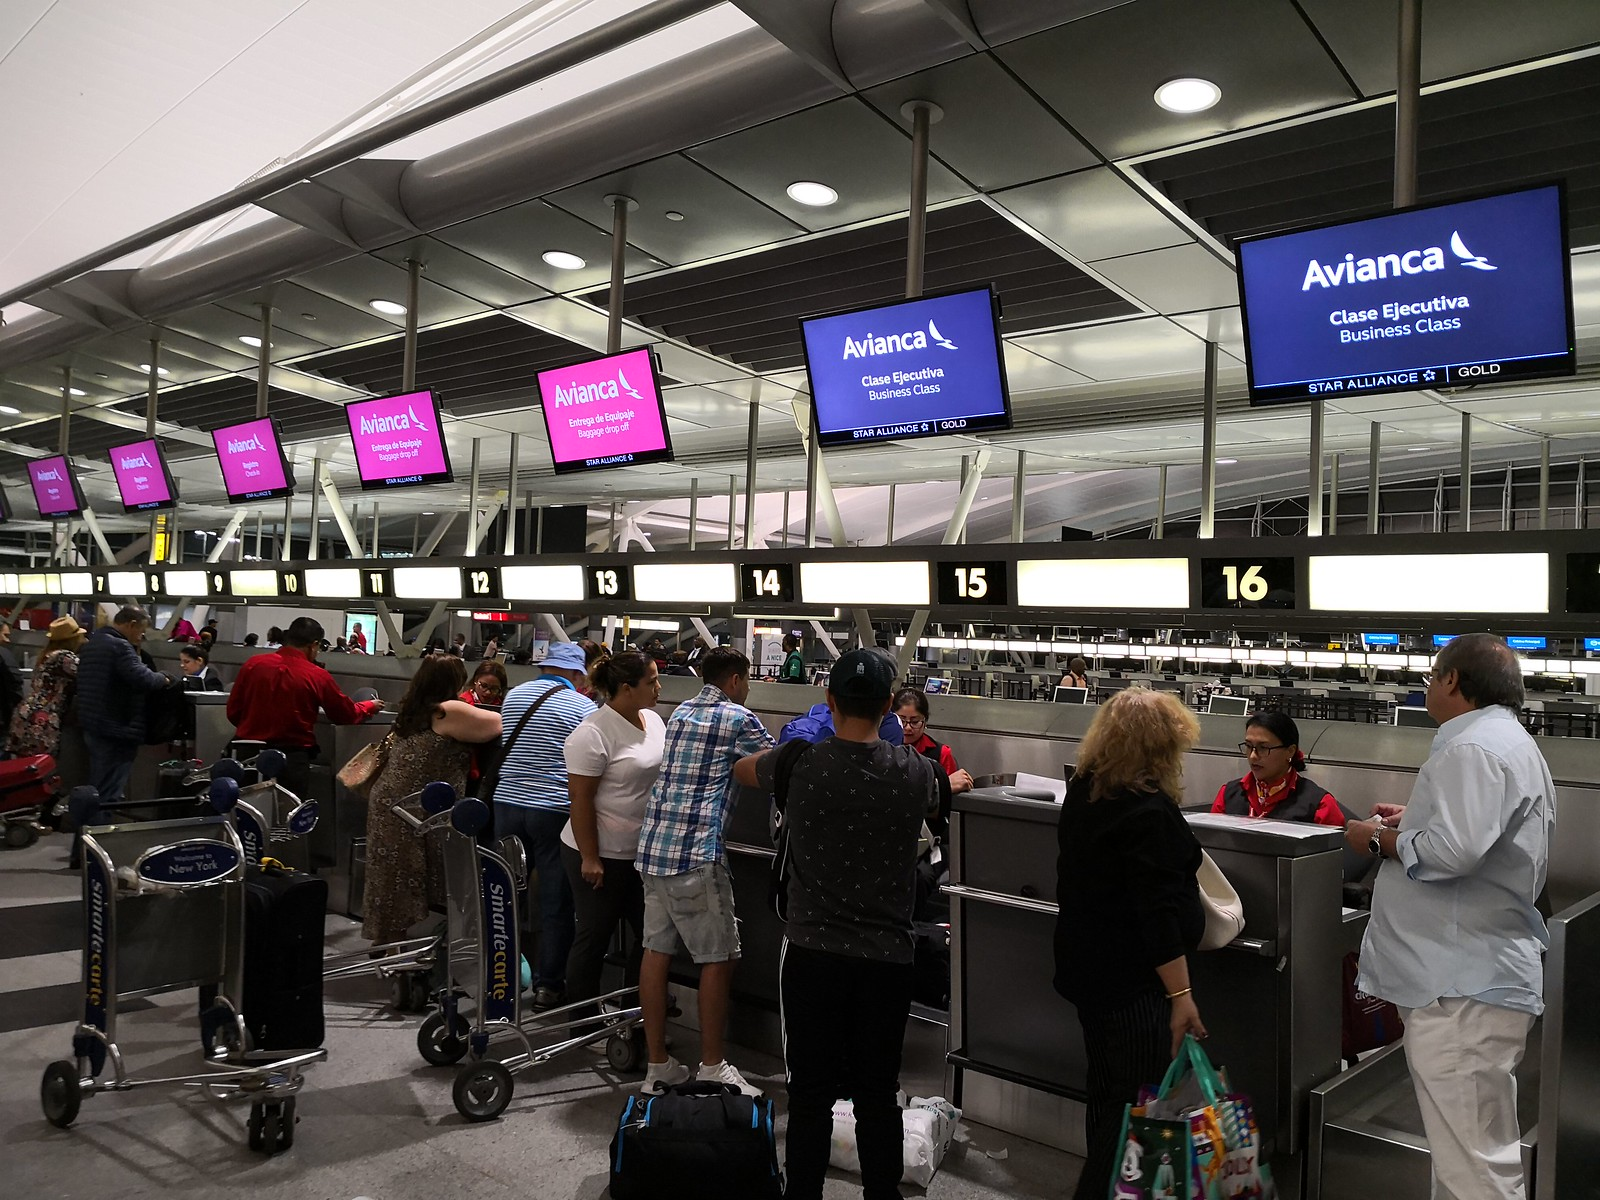 Avianca check-in counters